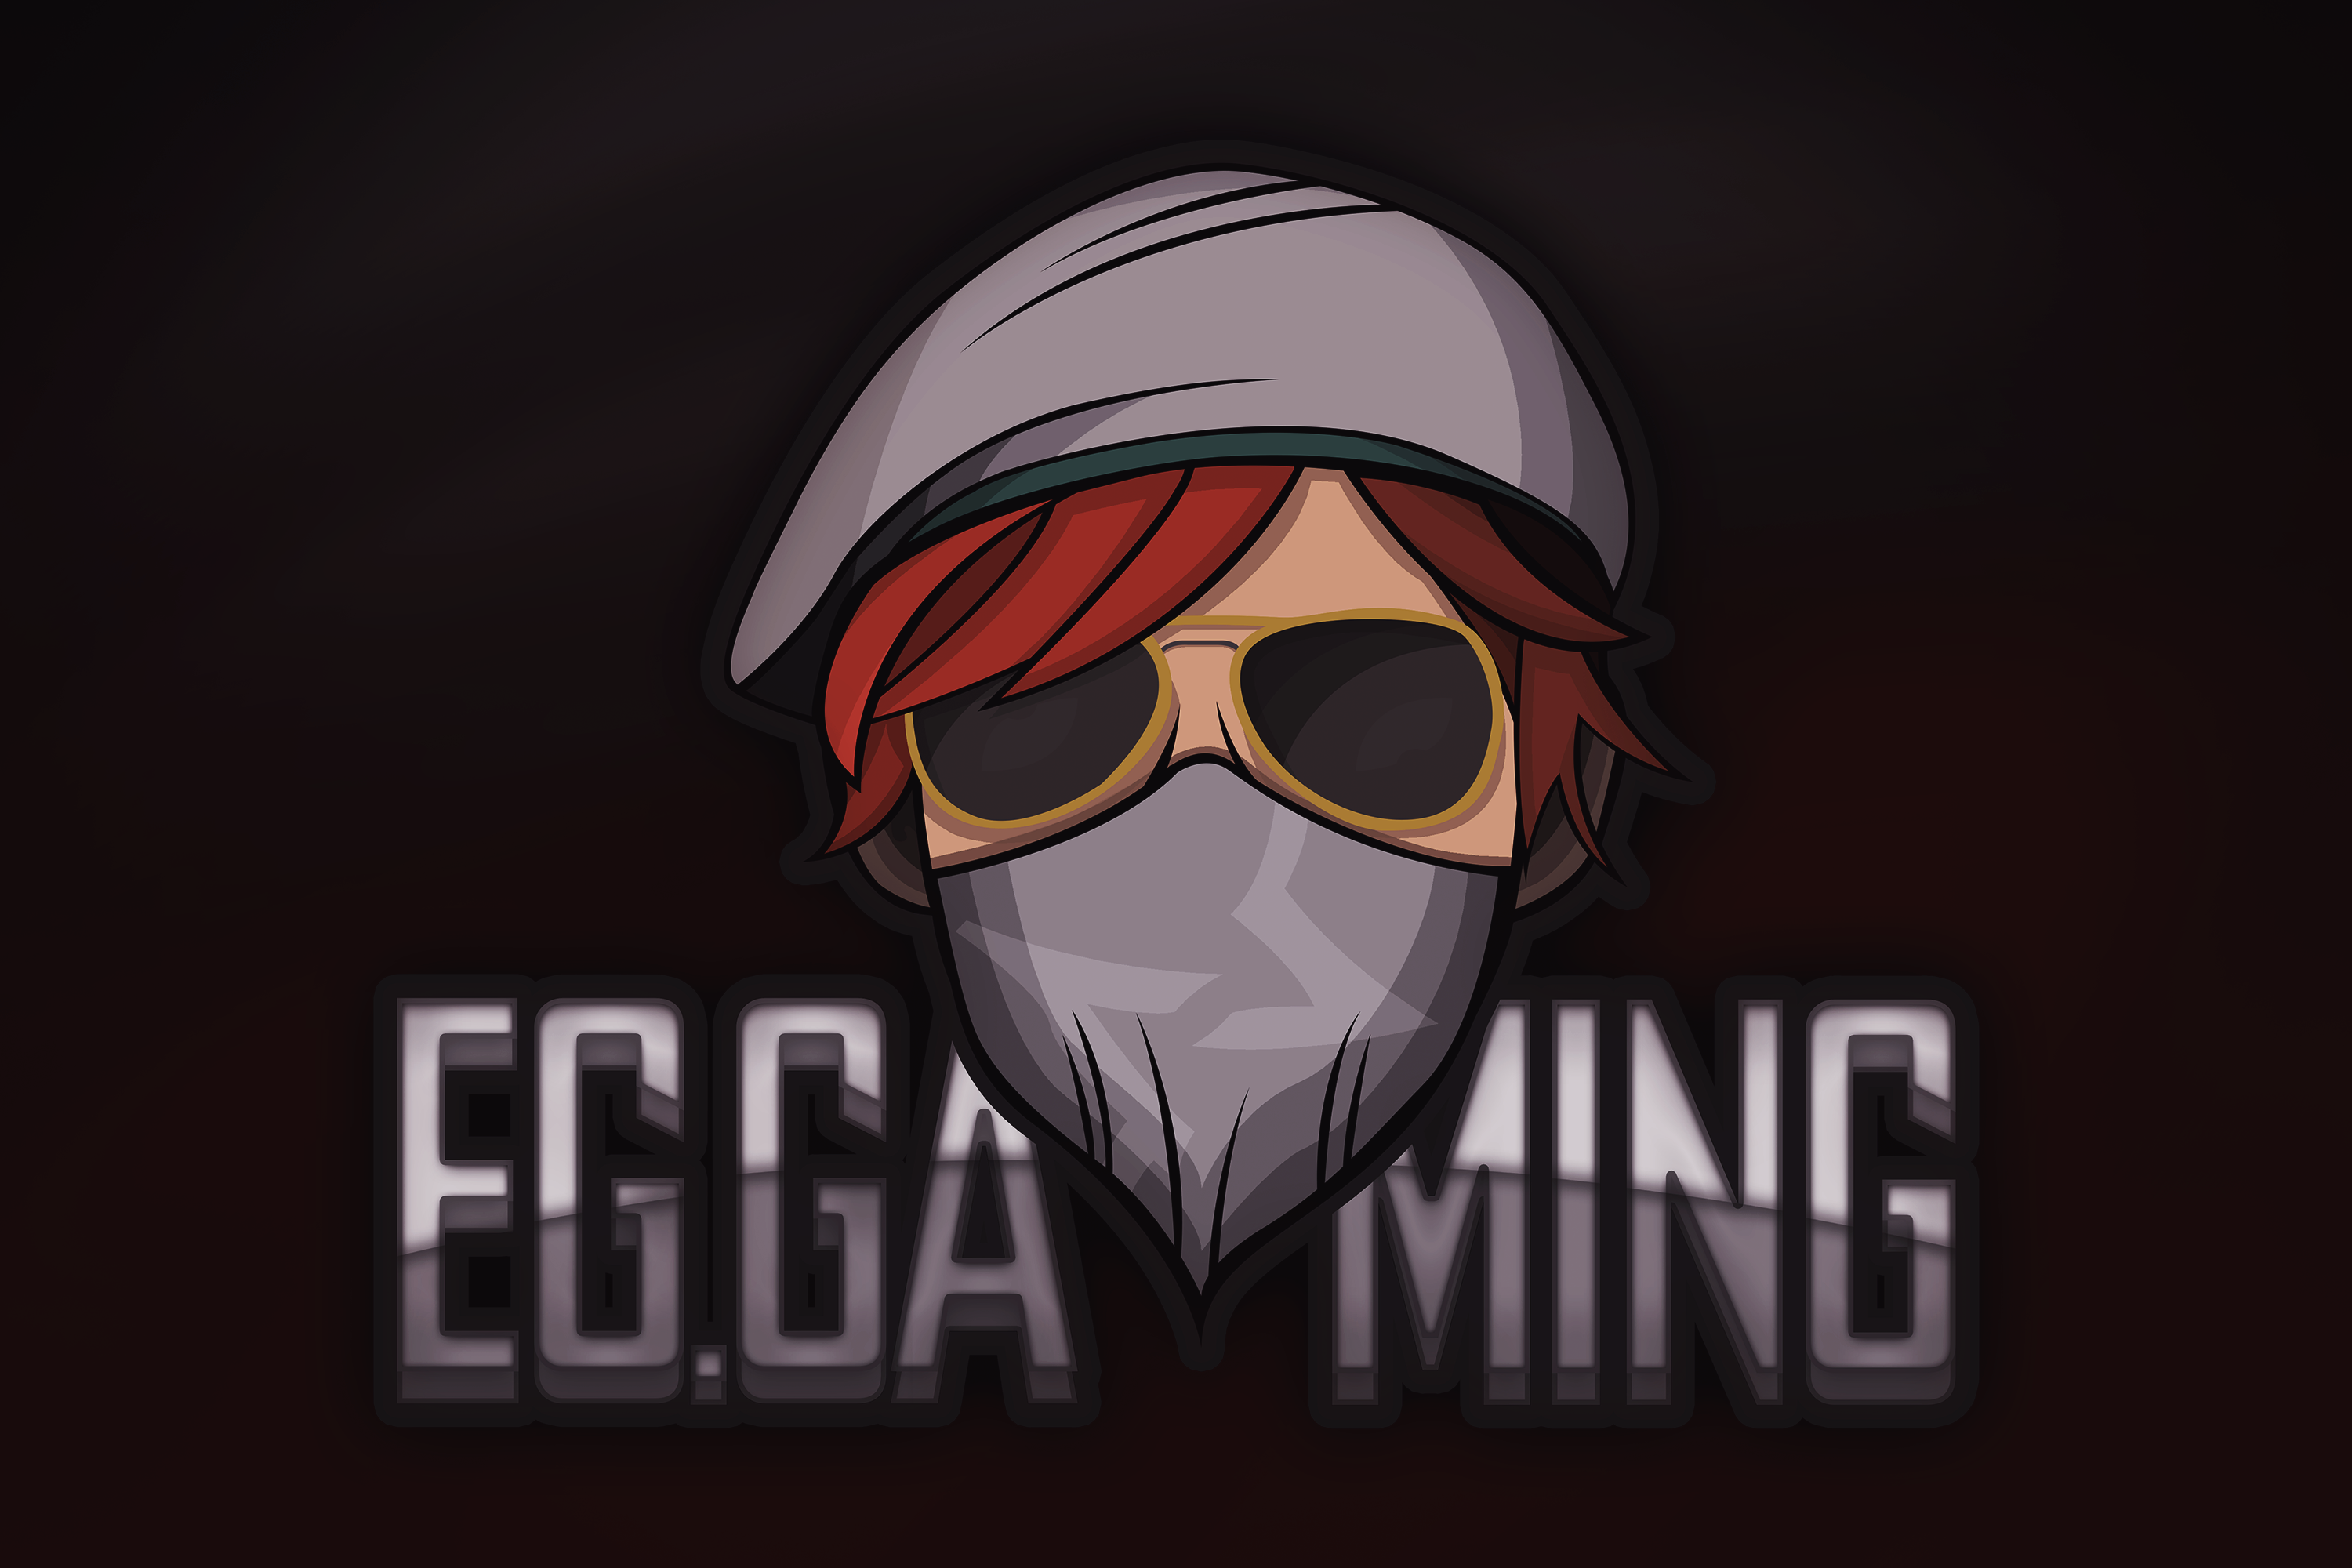 Clan / Team Logo for eg.gaming (instagram). It took about